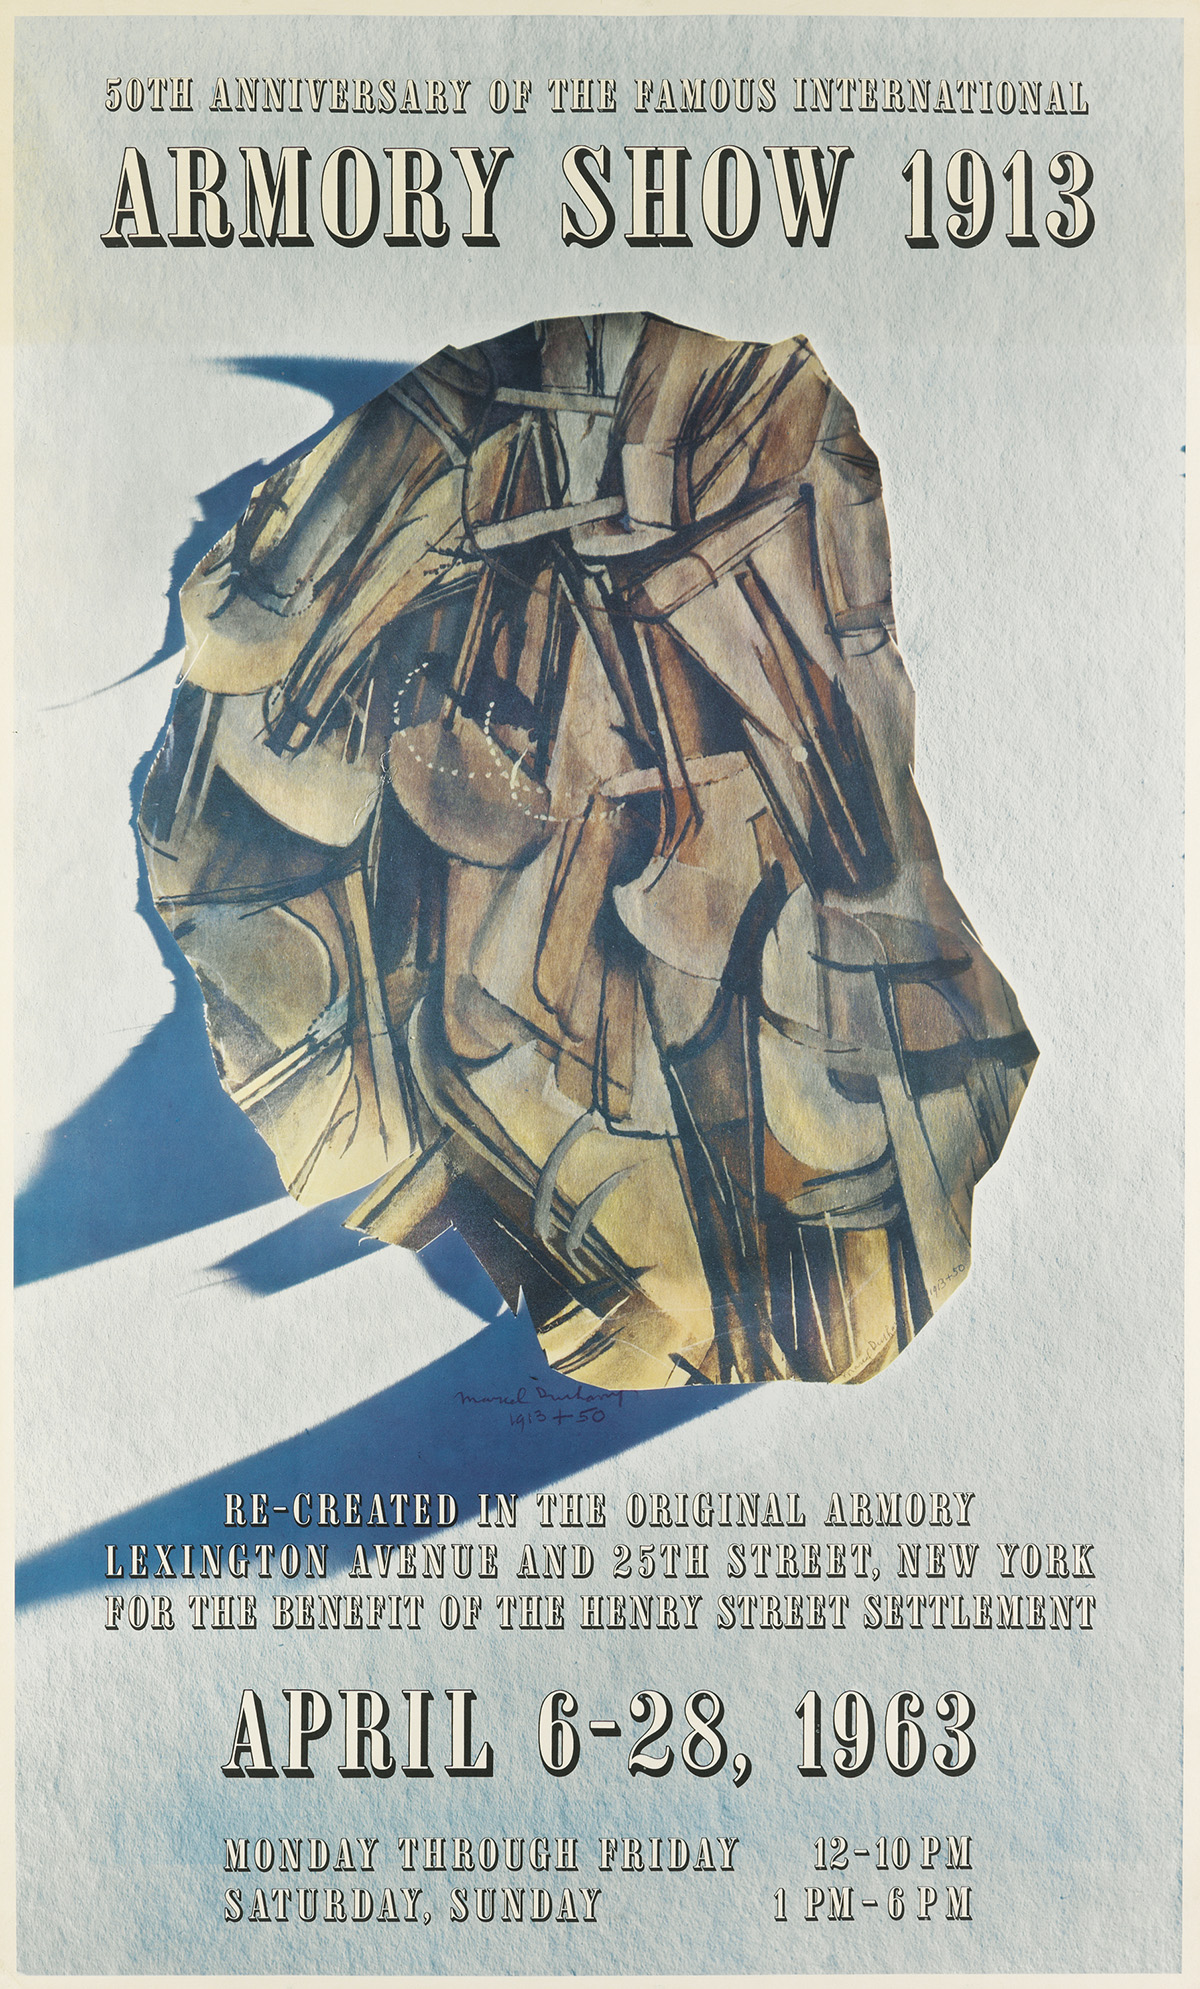 MARCEL DUCHAMP (1887-1968). 50TH ANNIVERSARY OF THE FAMOUS INTERNATIONAL ARMORY SHOW 1913. 1963. 44x26 inches, 112x67 cm.